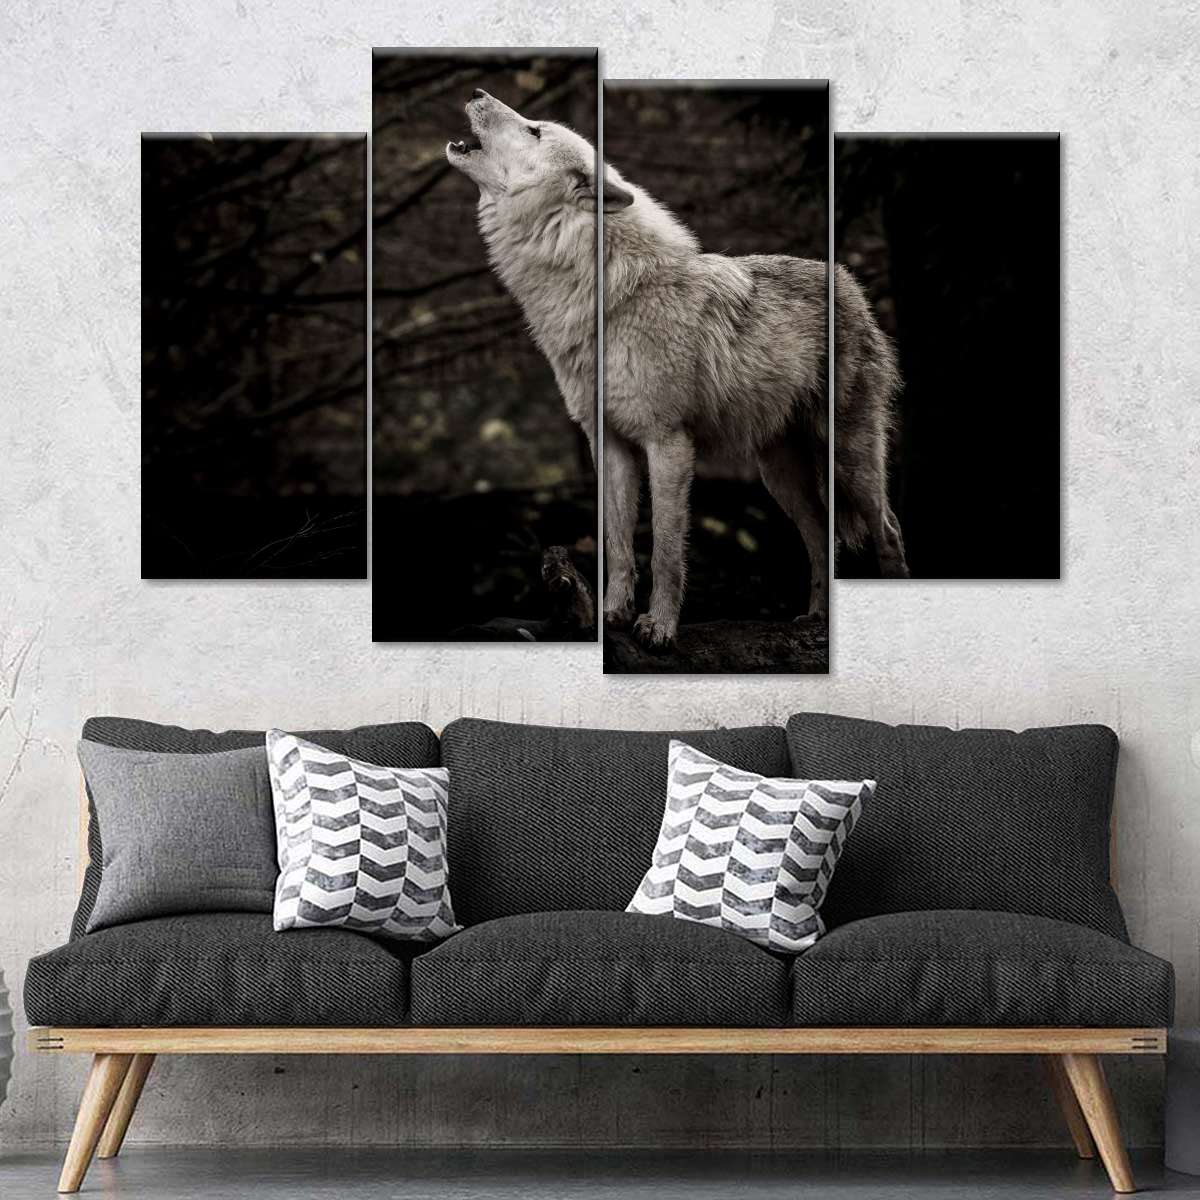 Wolves Black White Wildlife Framed Canvas Five Piece Wall Art 5 Panel Home Decor